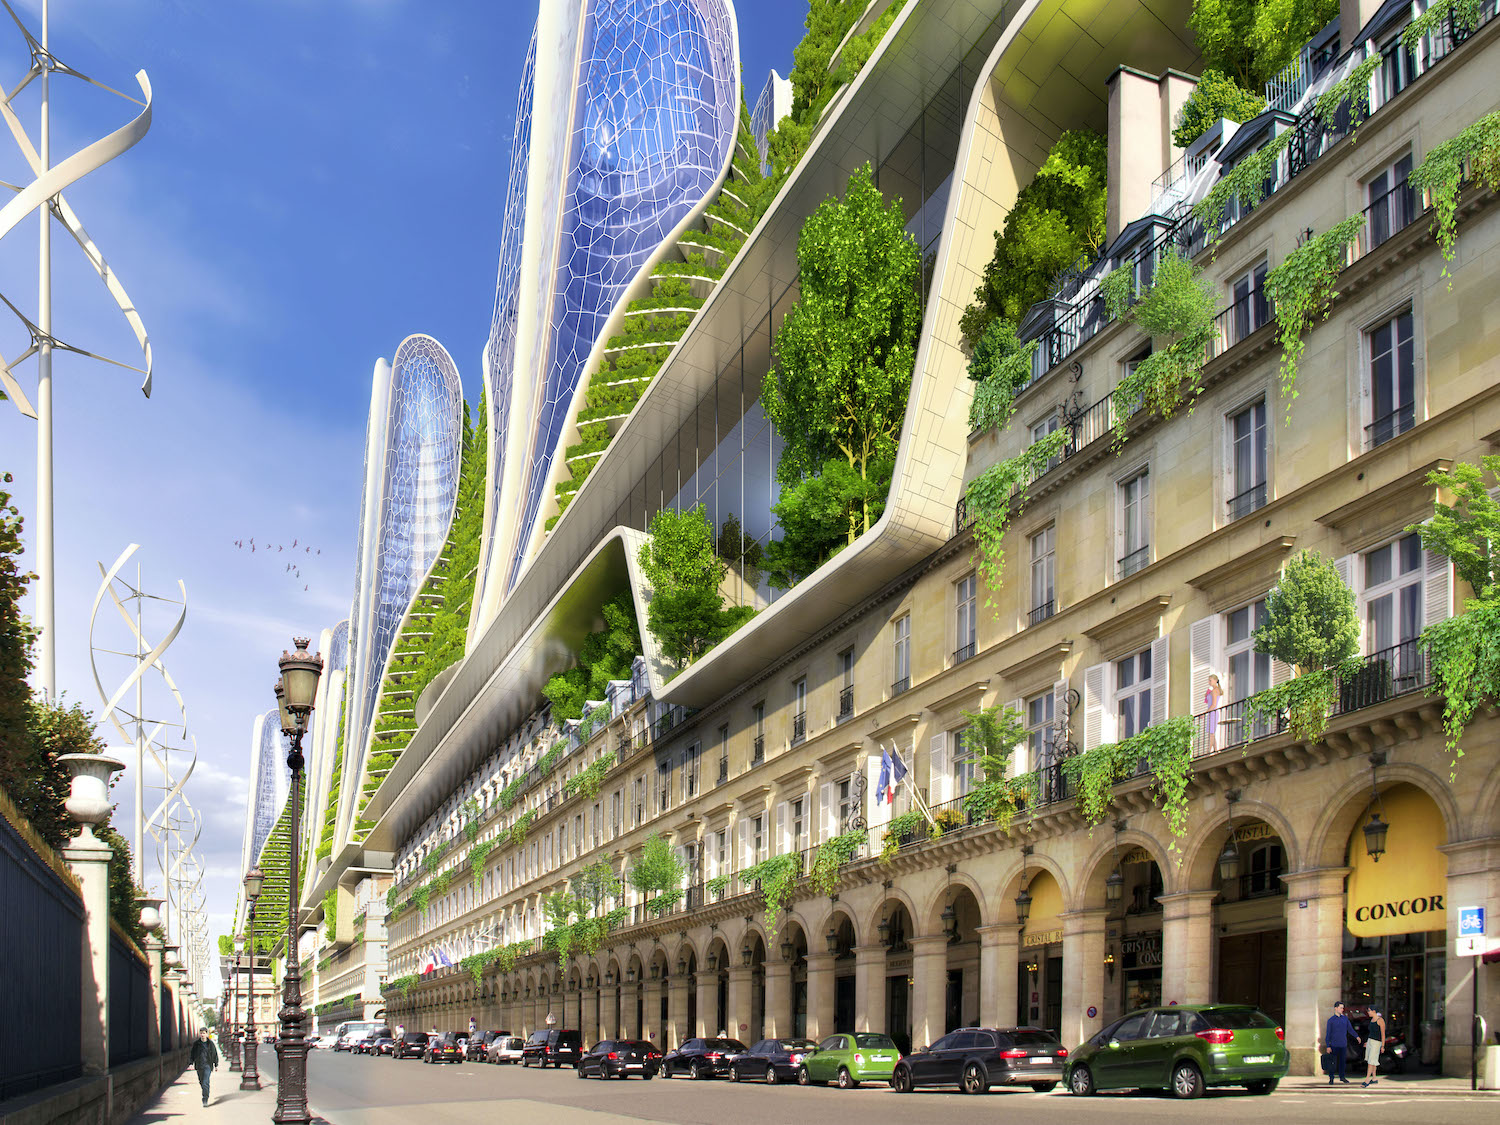 Paris street with genre plants in balconies